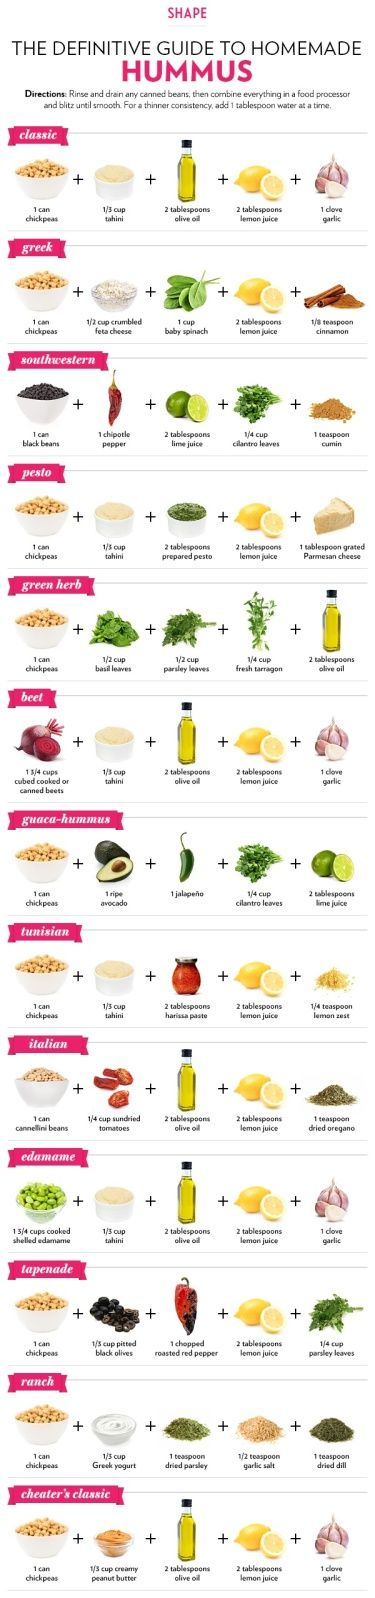 the definitive guide to homemade hummus... almost #vegan ... with a few exceptions :)